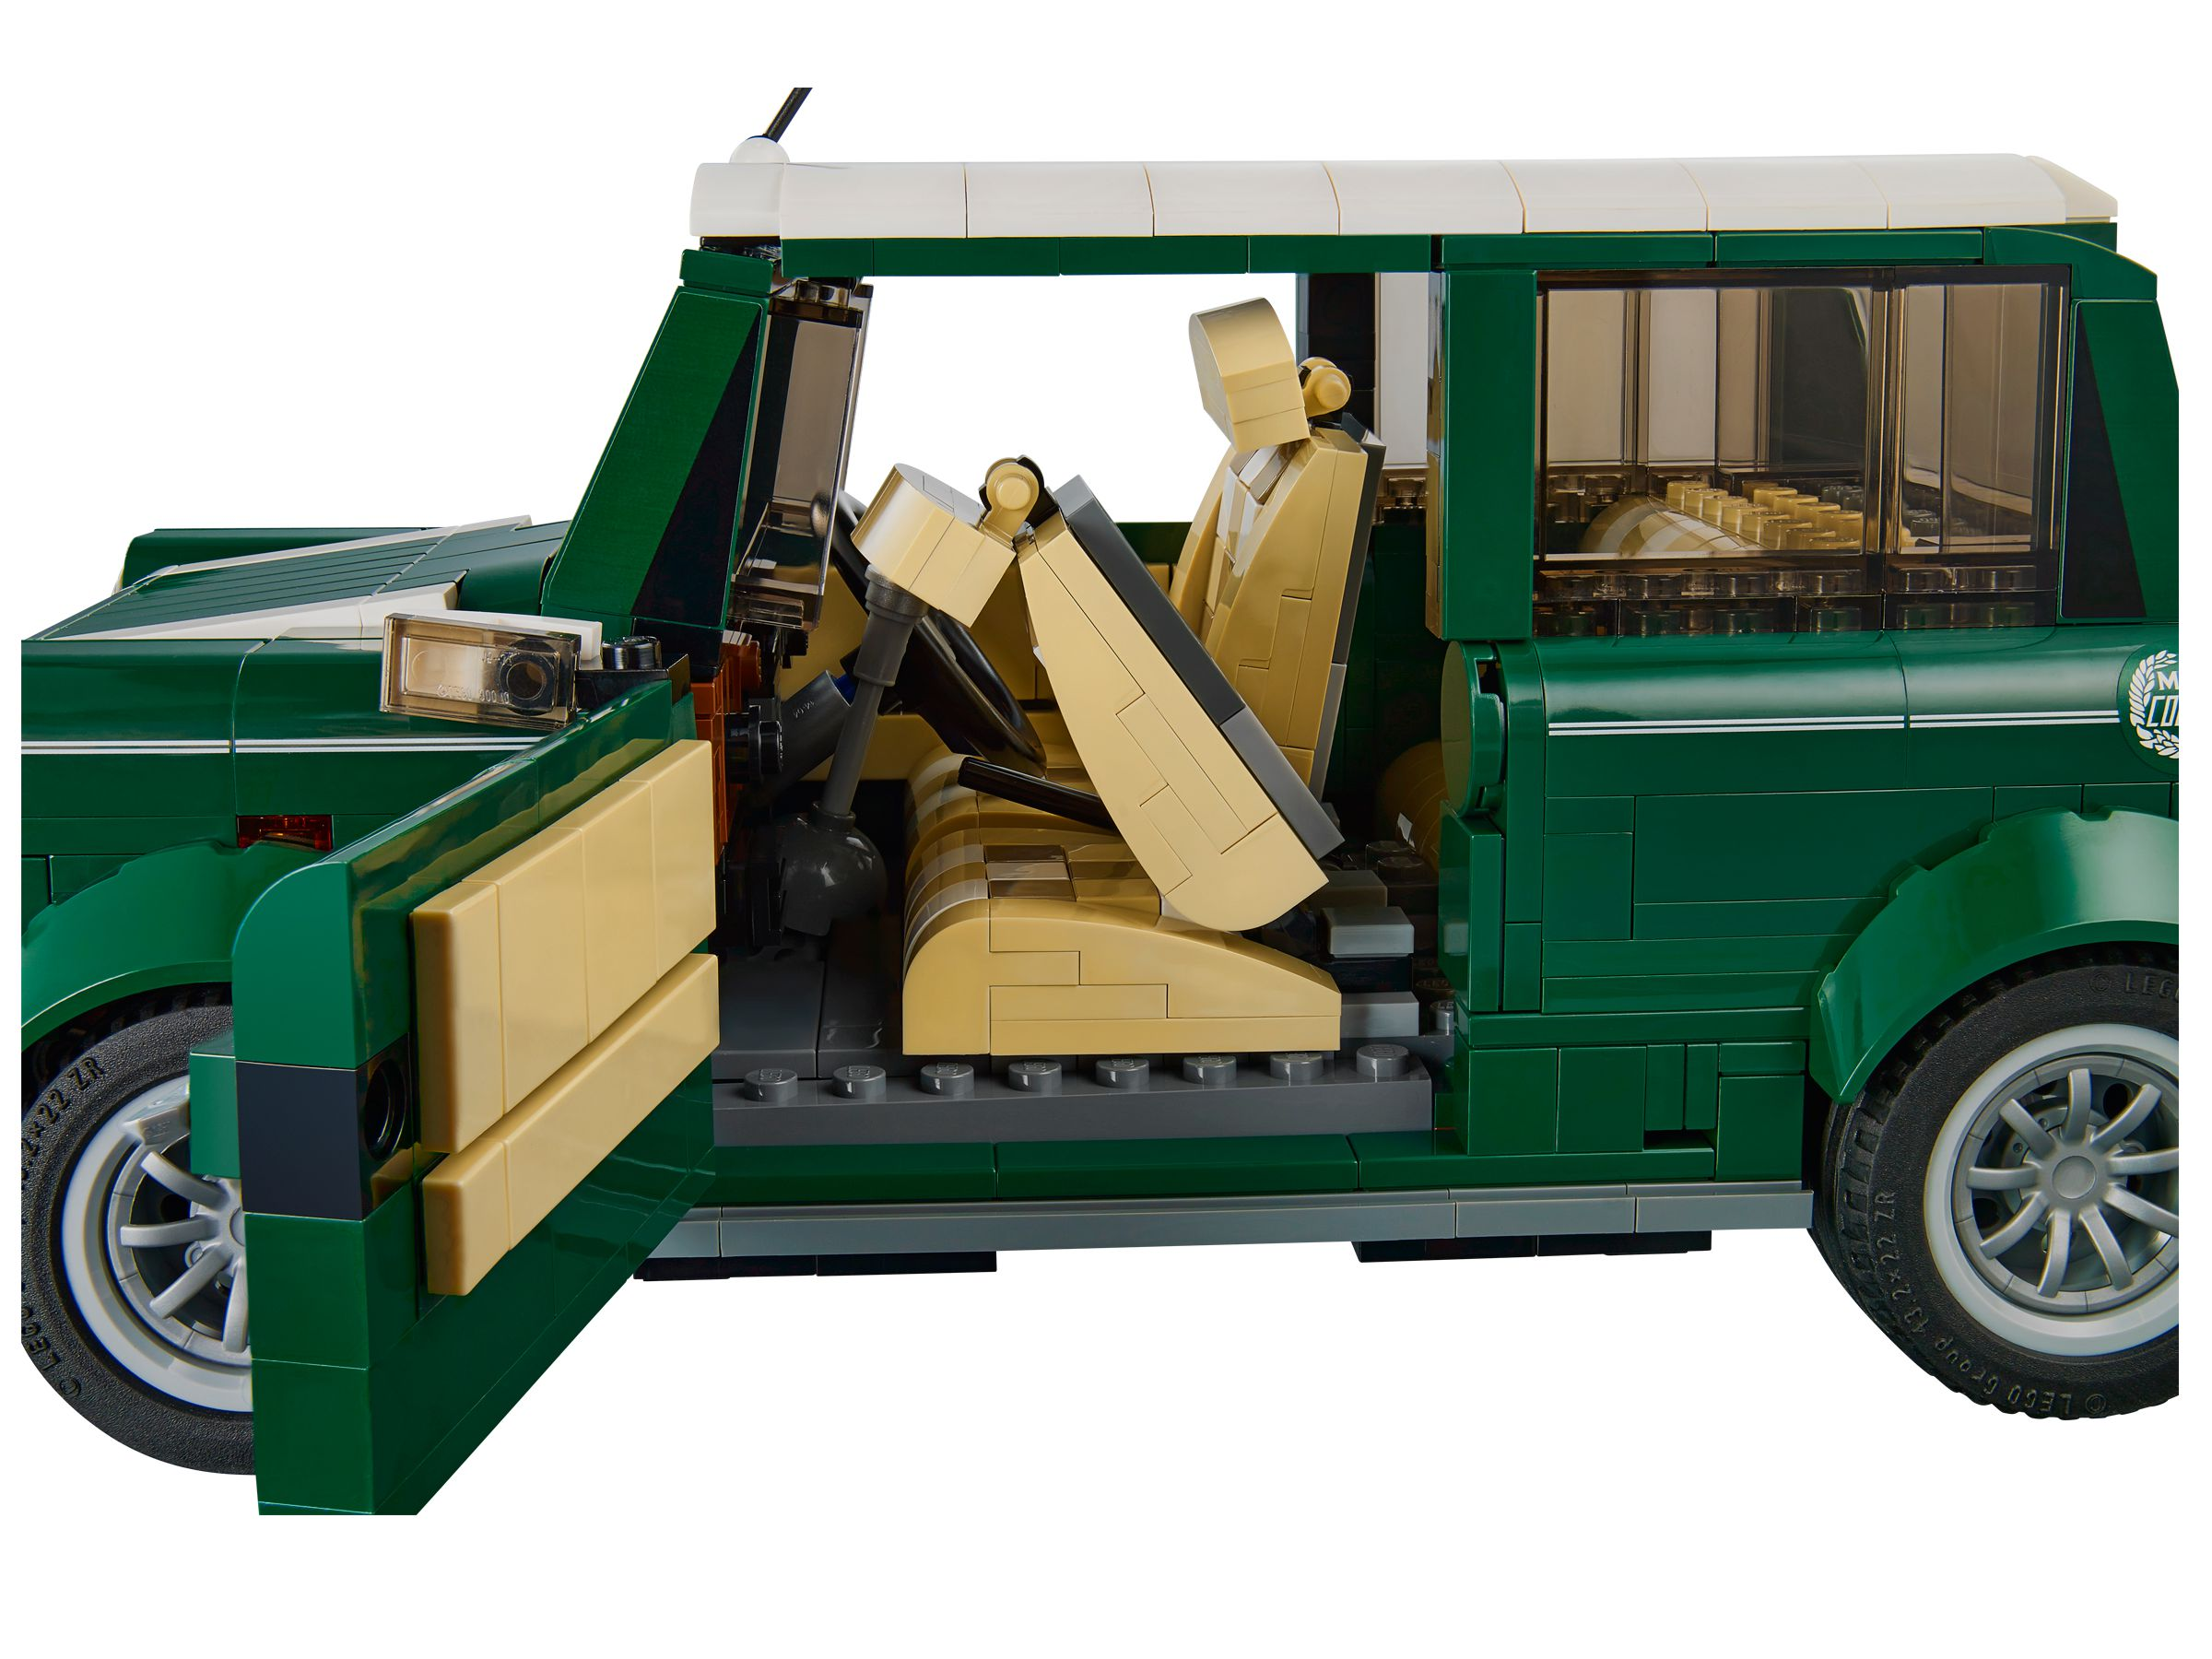 LEGO Advanced Models 10242 MINI Cooper LEGO_10242_alt5.jpg